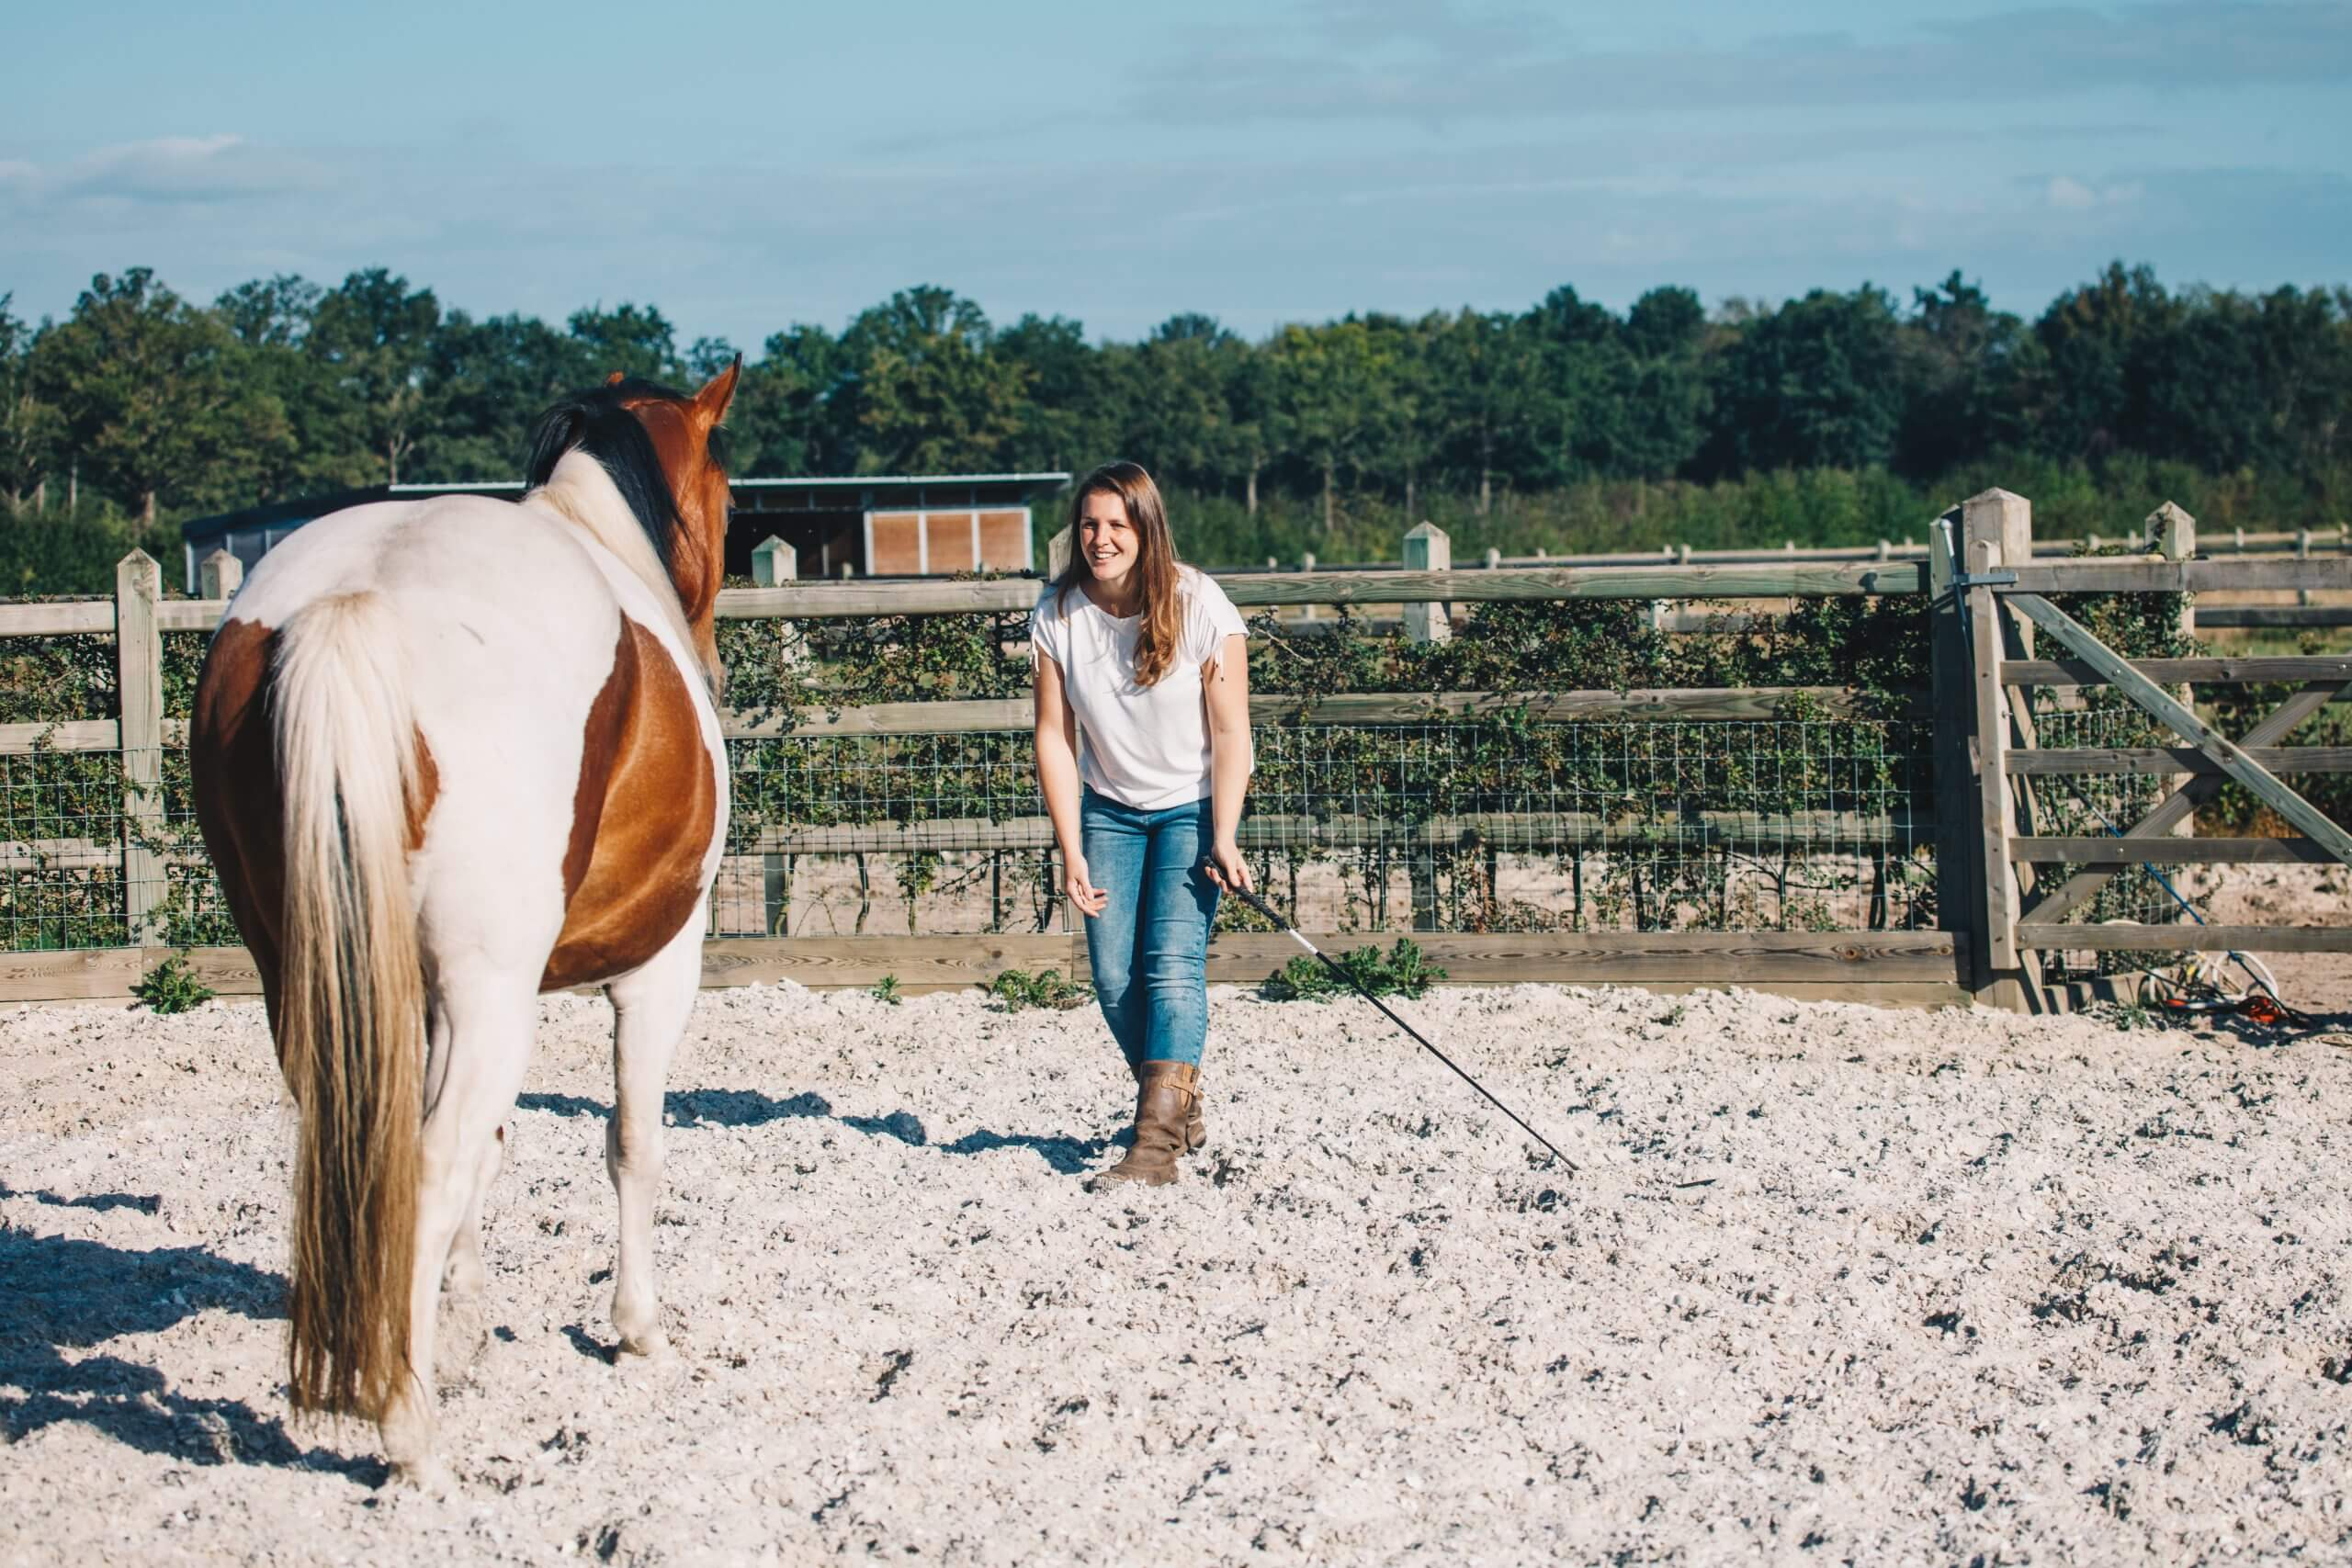 Joke Spaas - Coaching Horsemanship